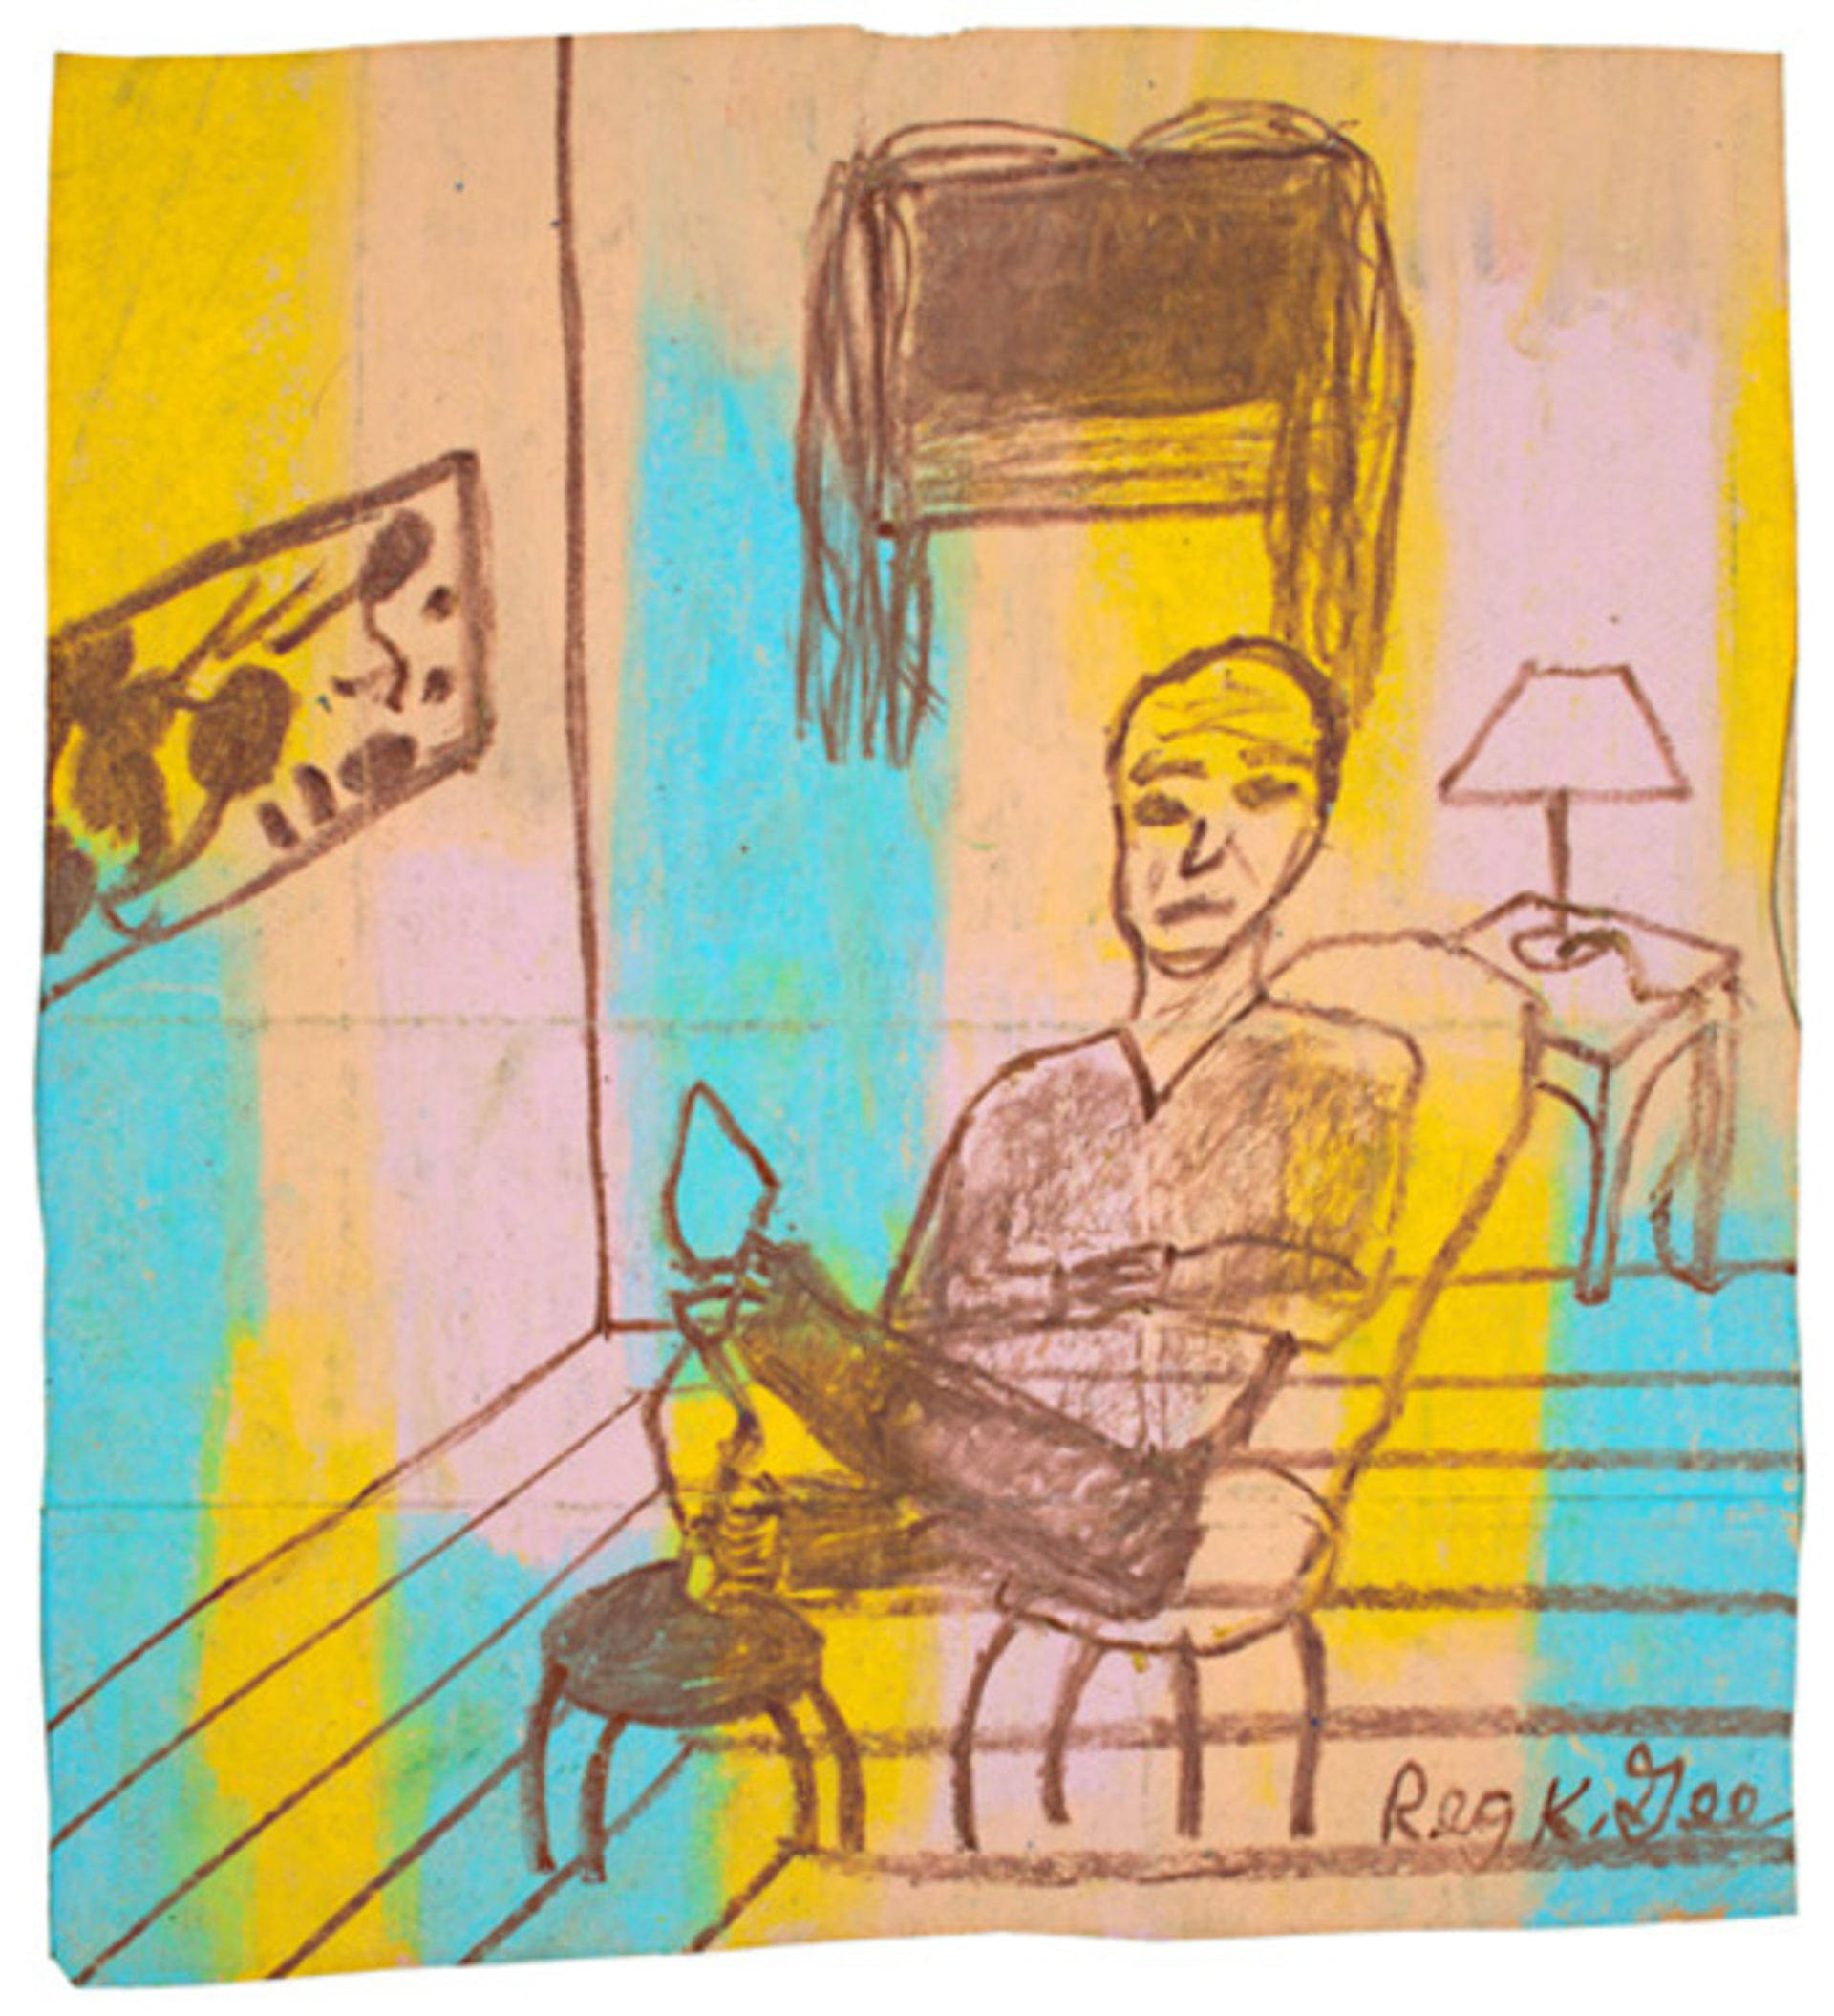 Accented Room Featuring a Man by Reginald K Gee